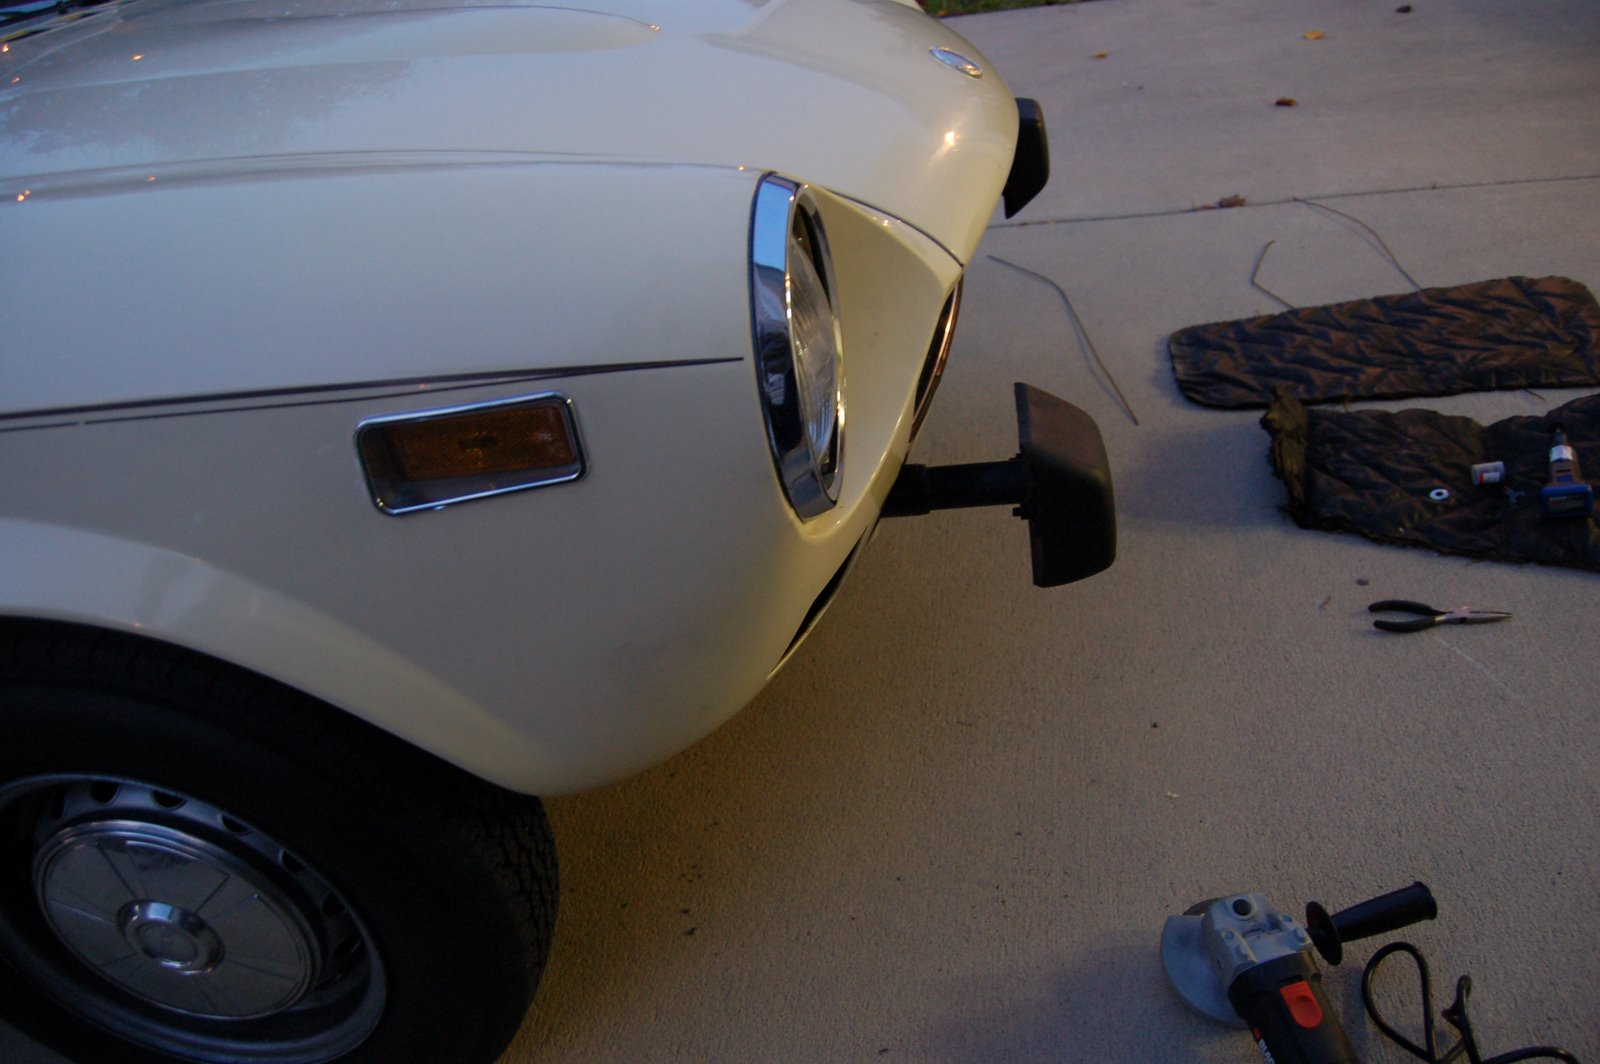 modern motoring handbuilt by robots fiat 124 spider abarth type Black Fiat Spider it caught a flame while i was using the cutting wheel to extend the 10mph bumper shock bracket to ac modate the jeep tj bumper over riders i purchased off